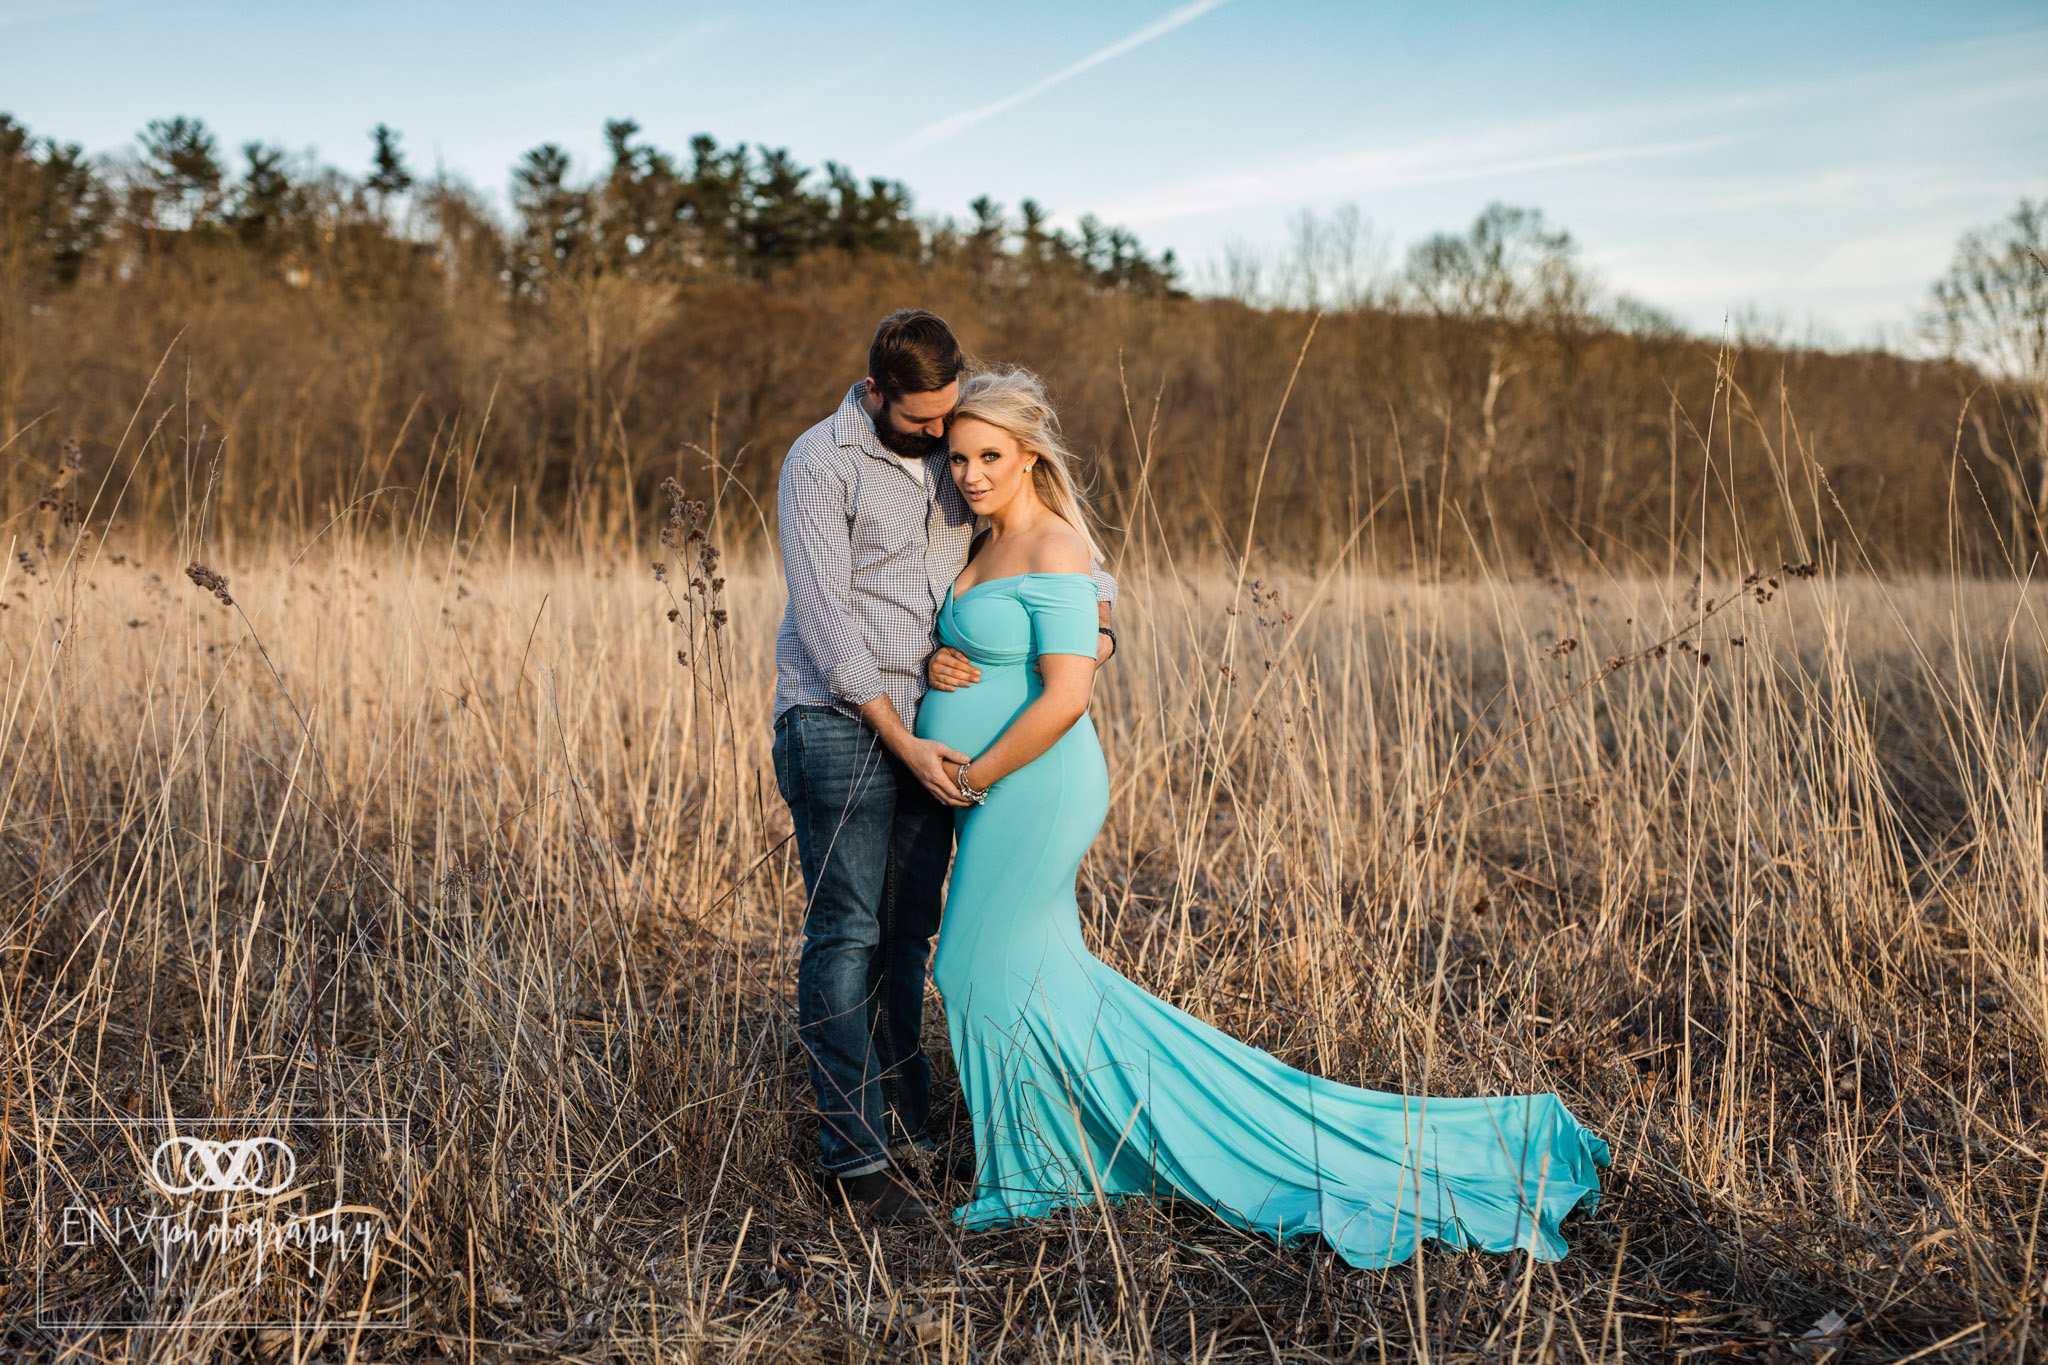 mount vernon columbus ohio maternity newborn photographer 42019 (3).jpg